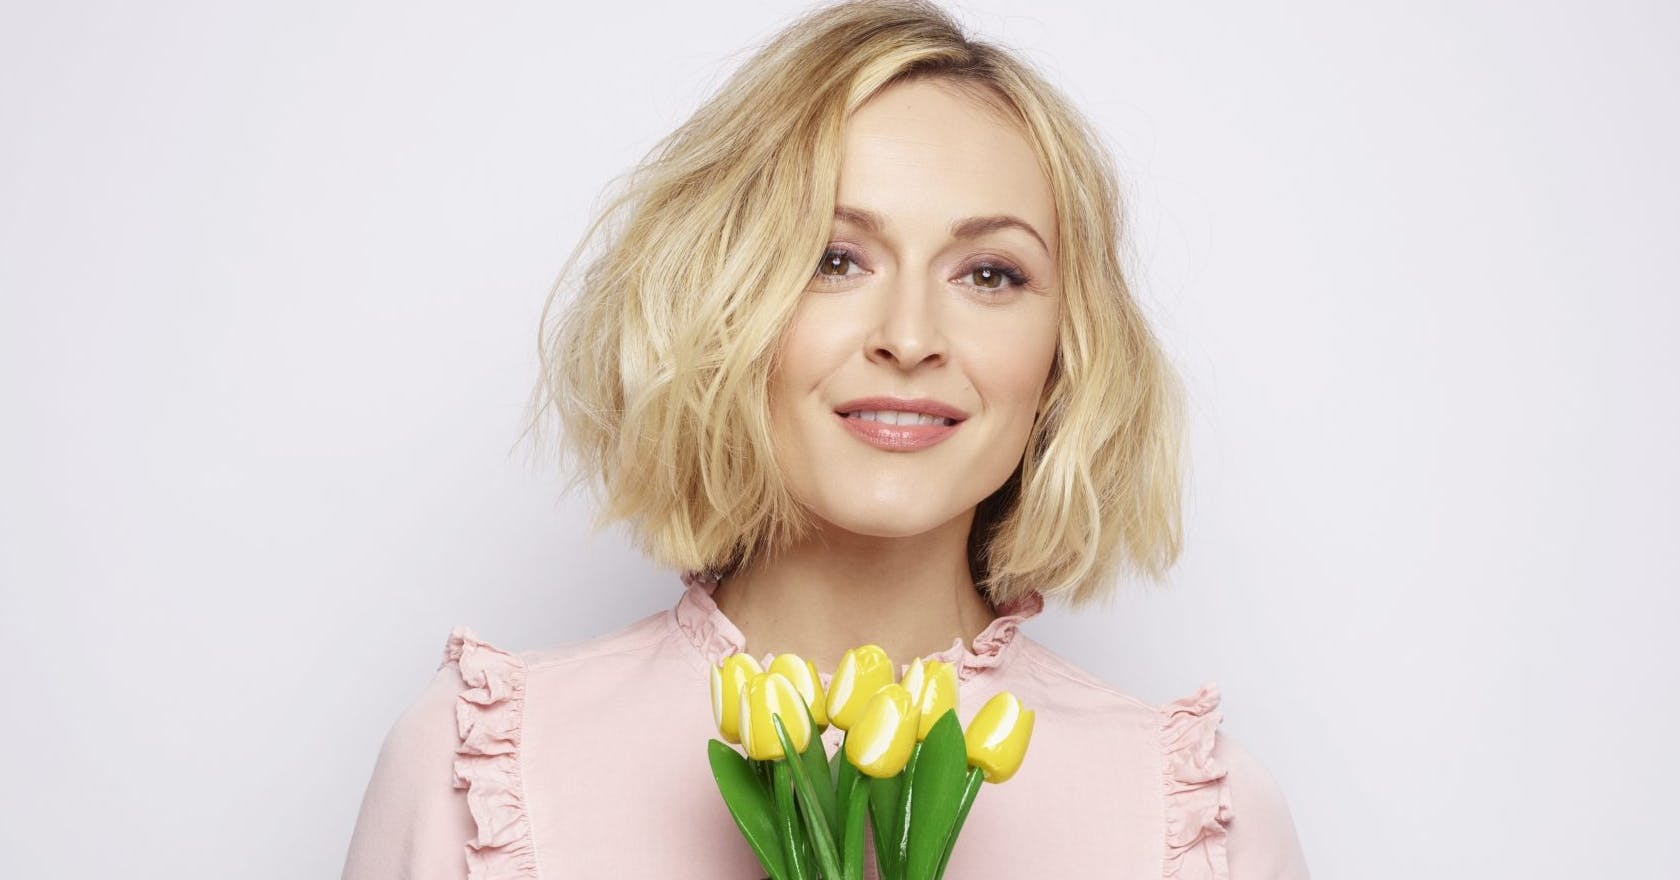 Fearne Cotton is taking this simple approach to quarantine dressing to lift her mood